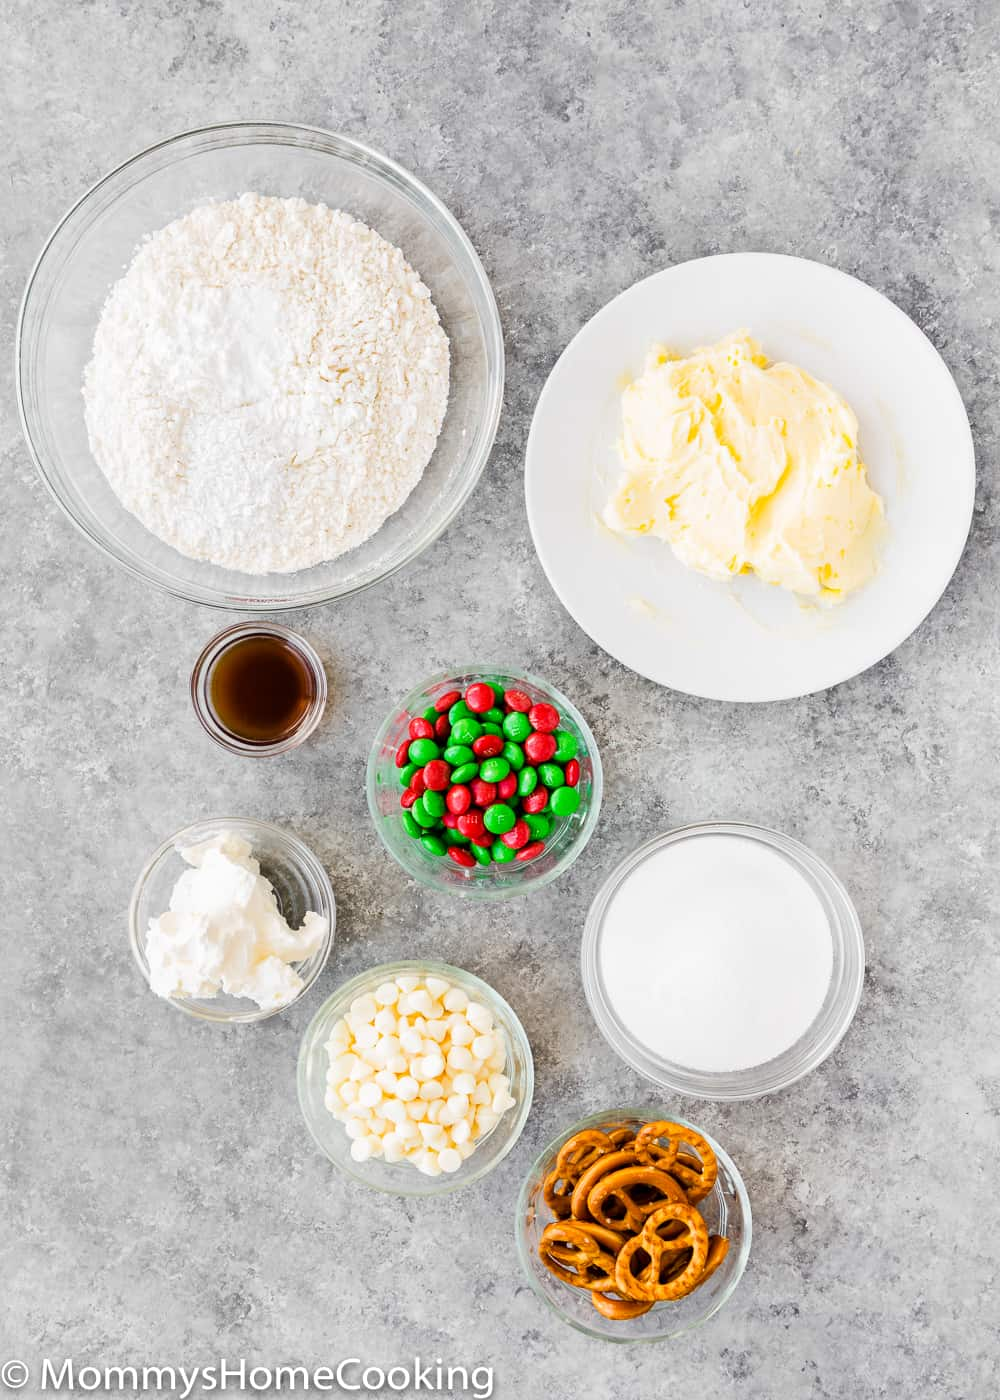 Easy Eggless Christmas Cookies Ingredients